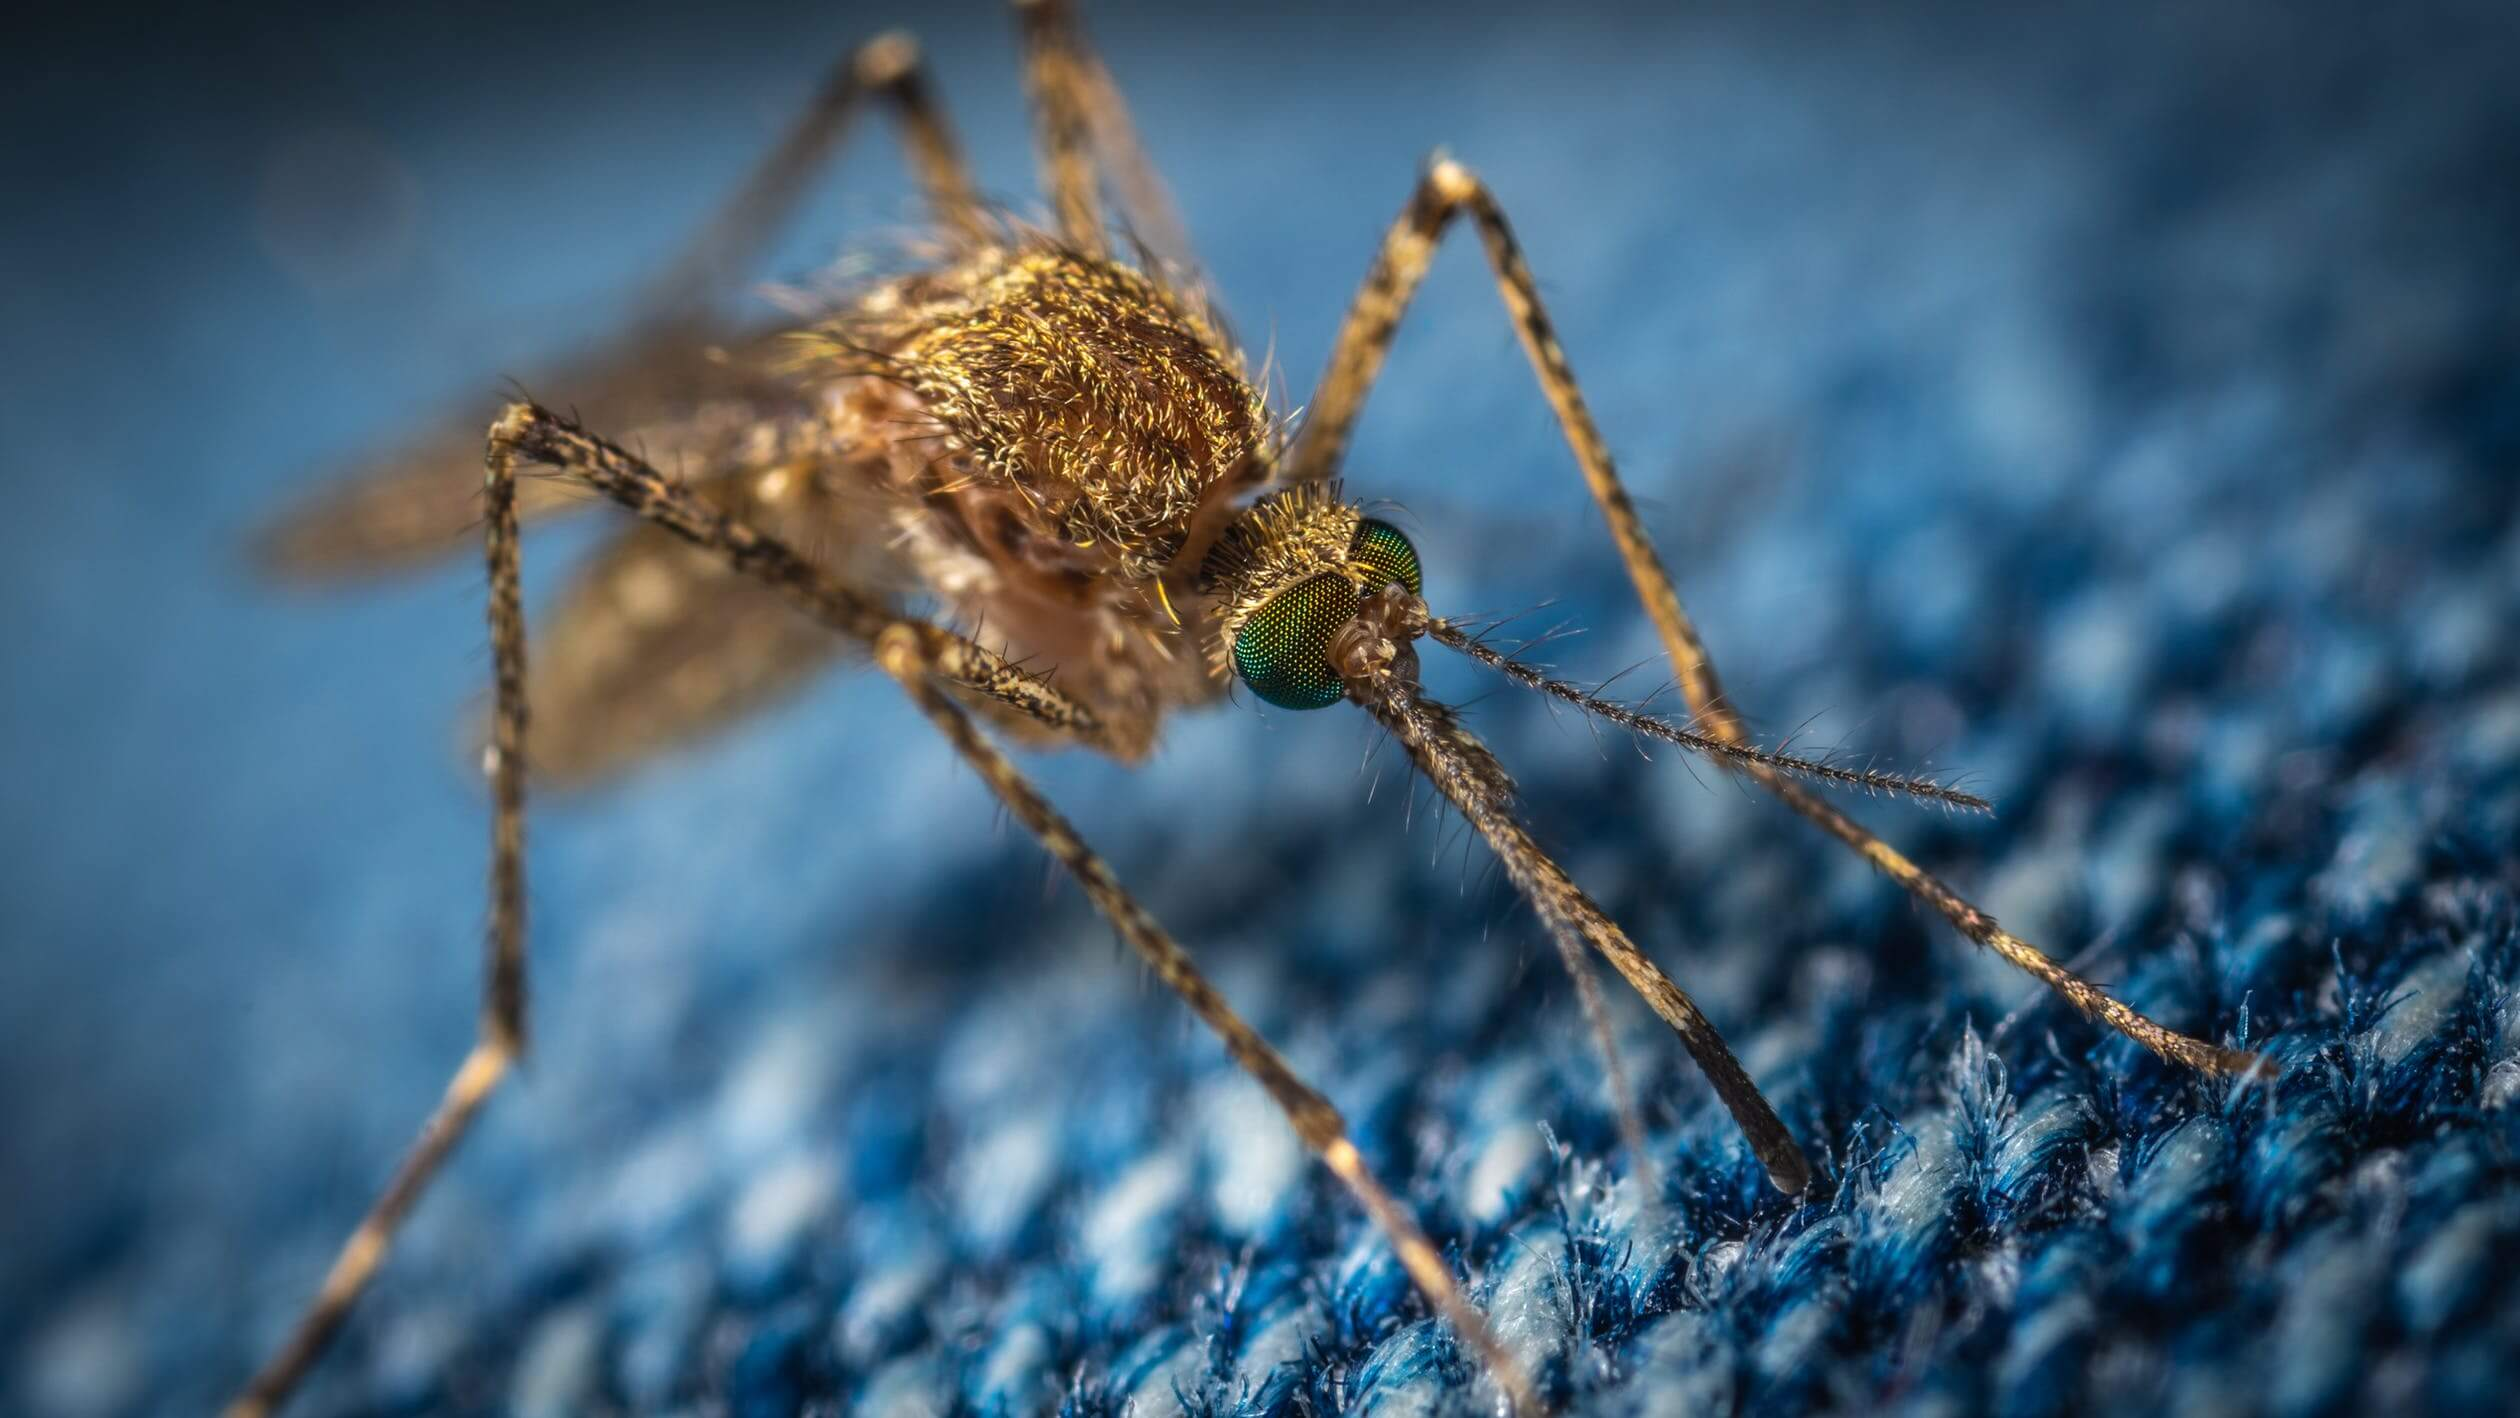 brown mosquito sitting on clothes